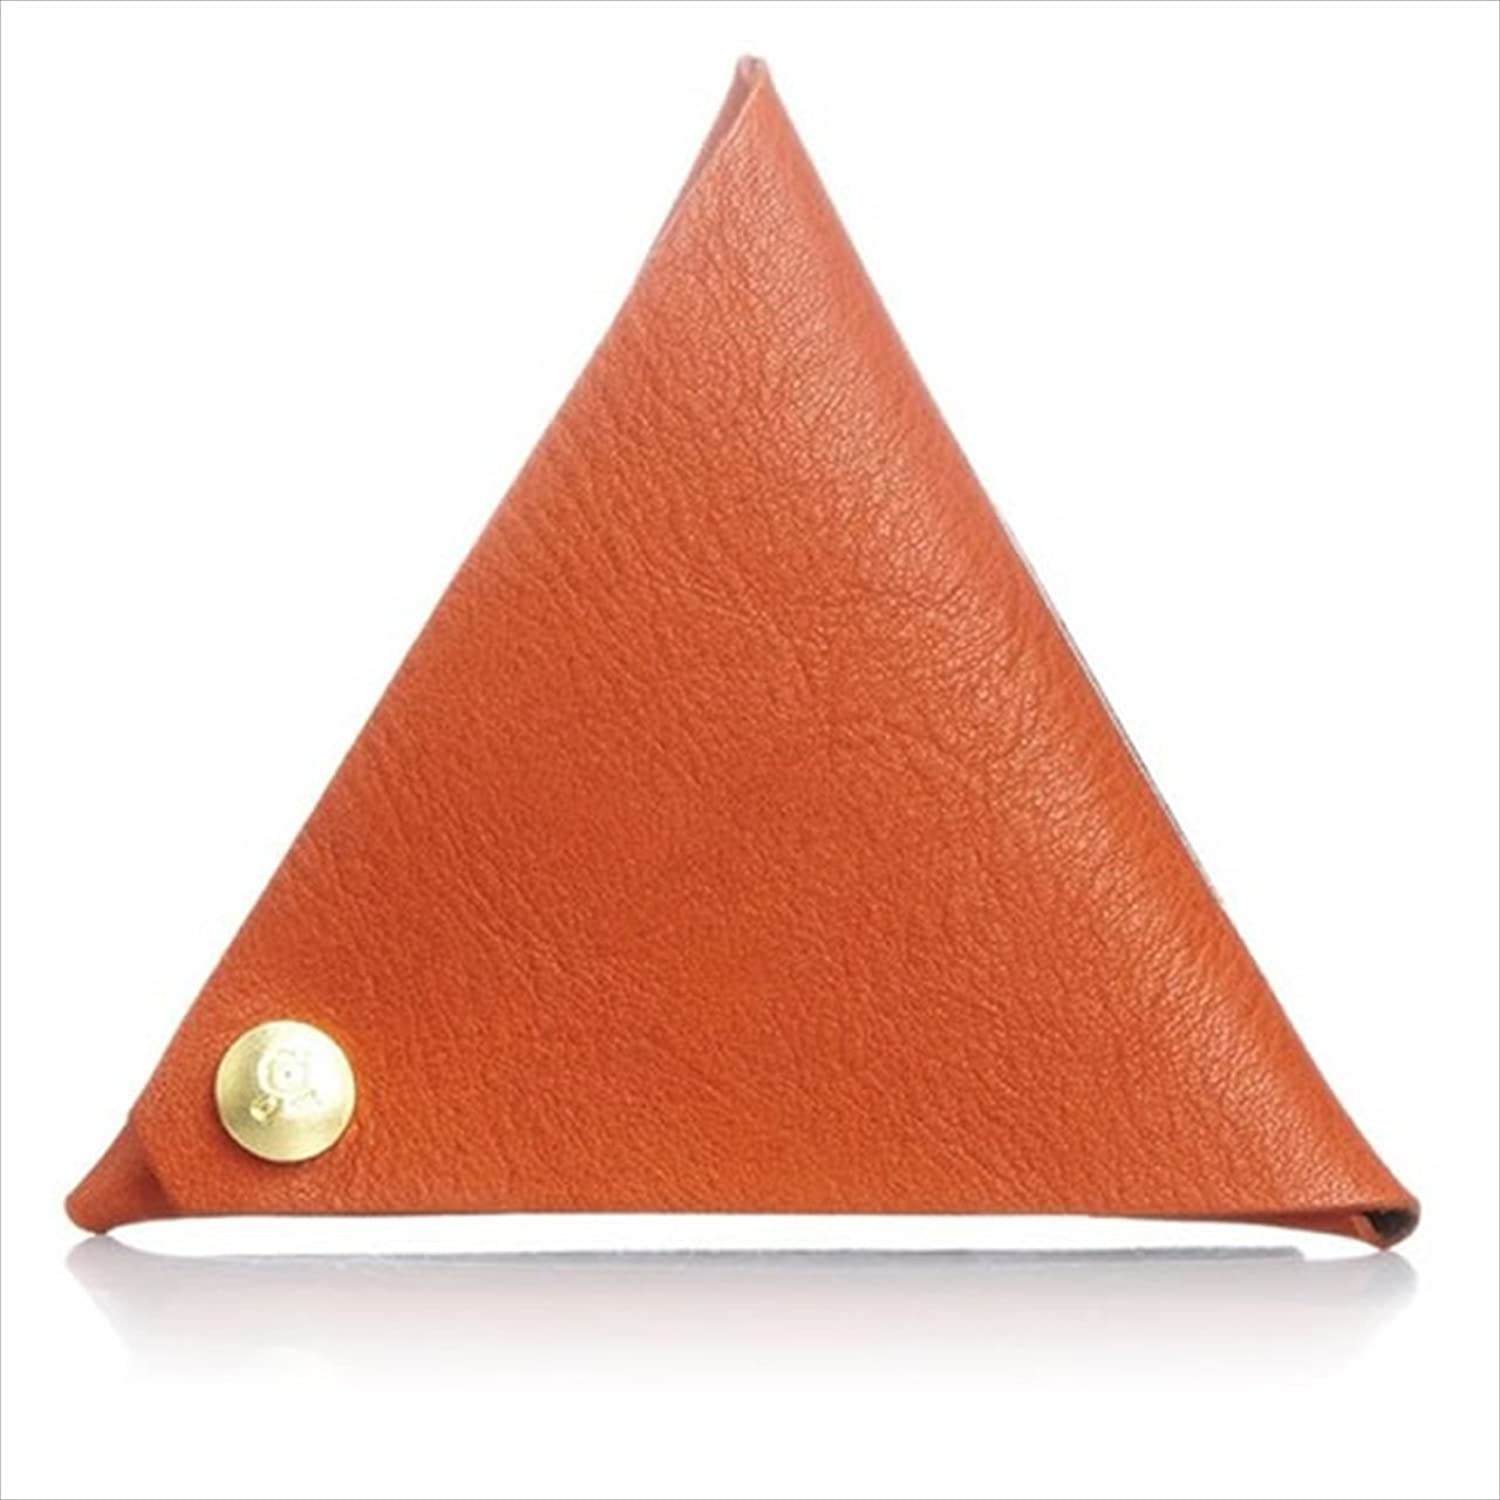 Made in Japan Leather@Coin Case Purse Pouch Wallet 1312 Orange•Dark Brown made in japan leather coin case purse pouch wallet 1312 orange•dark brown